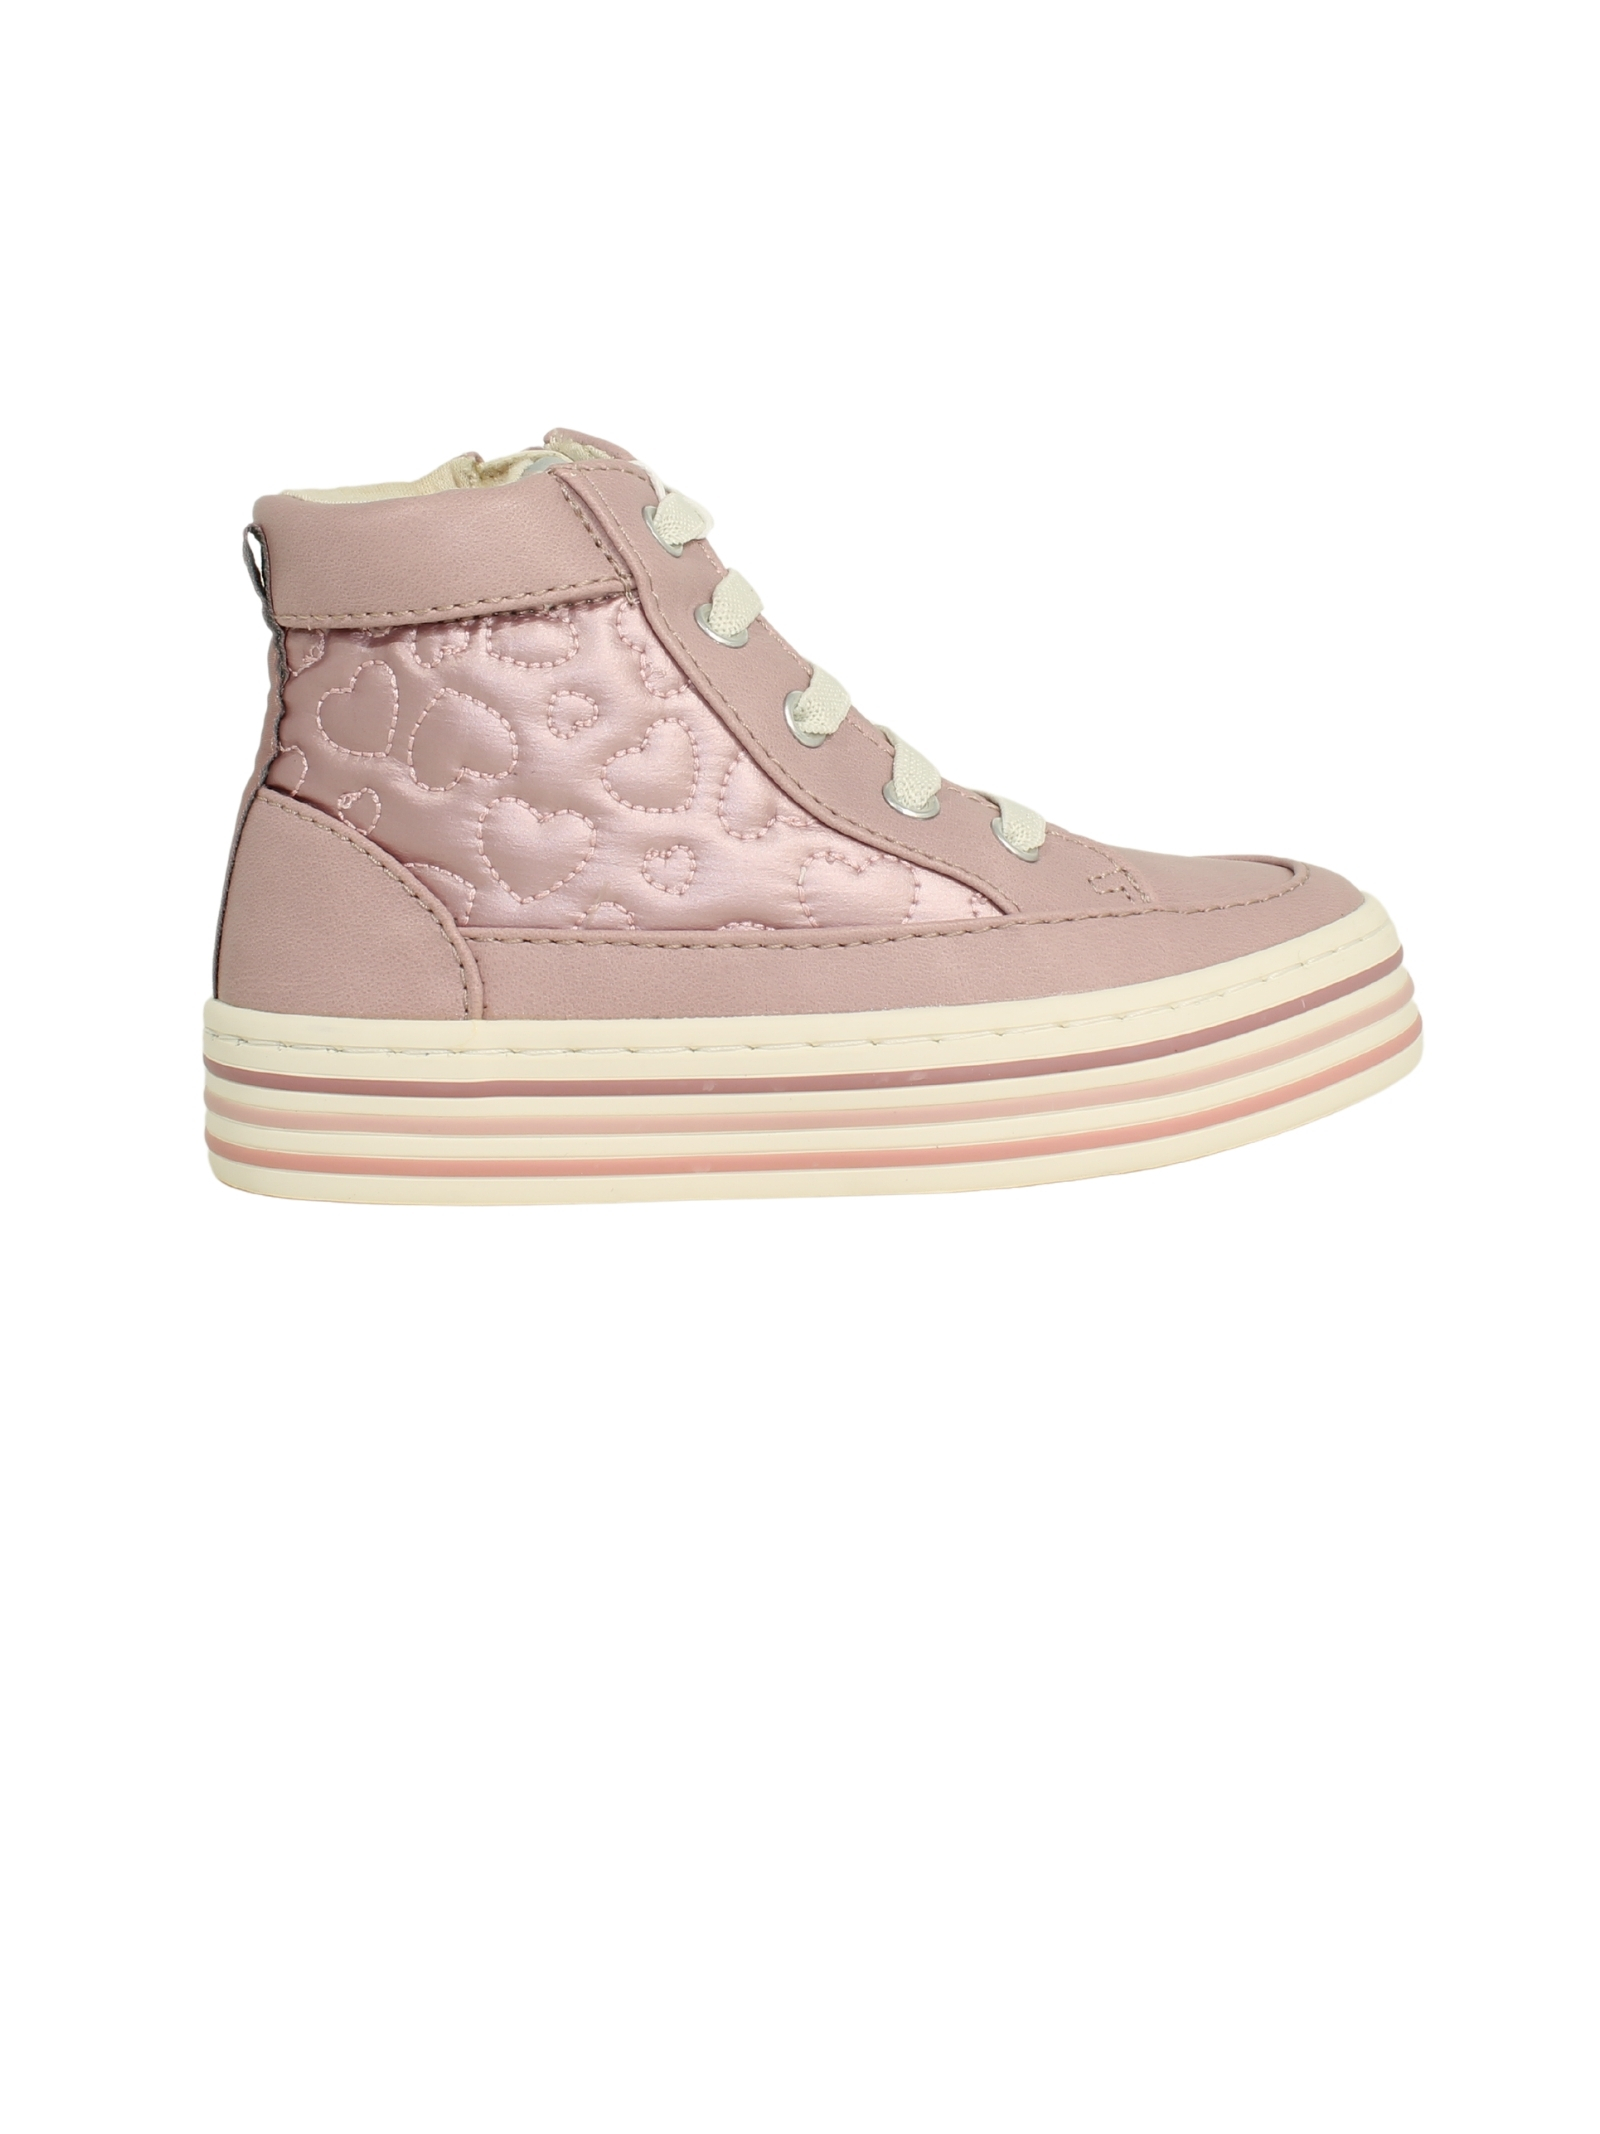 Sneakers Plateau Bambina MAYORAL   Sneakers   46245062